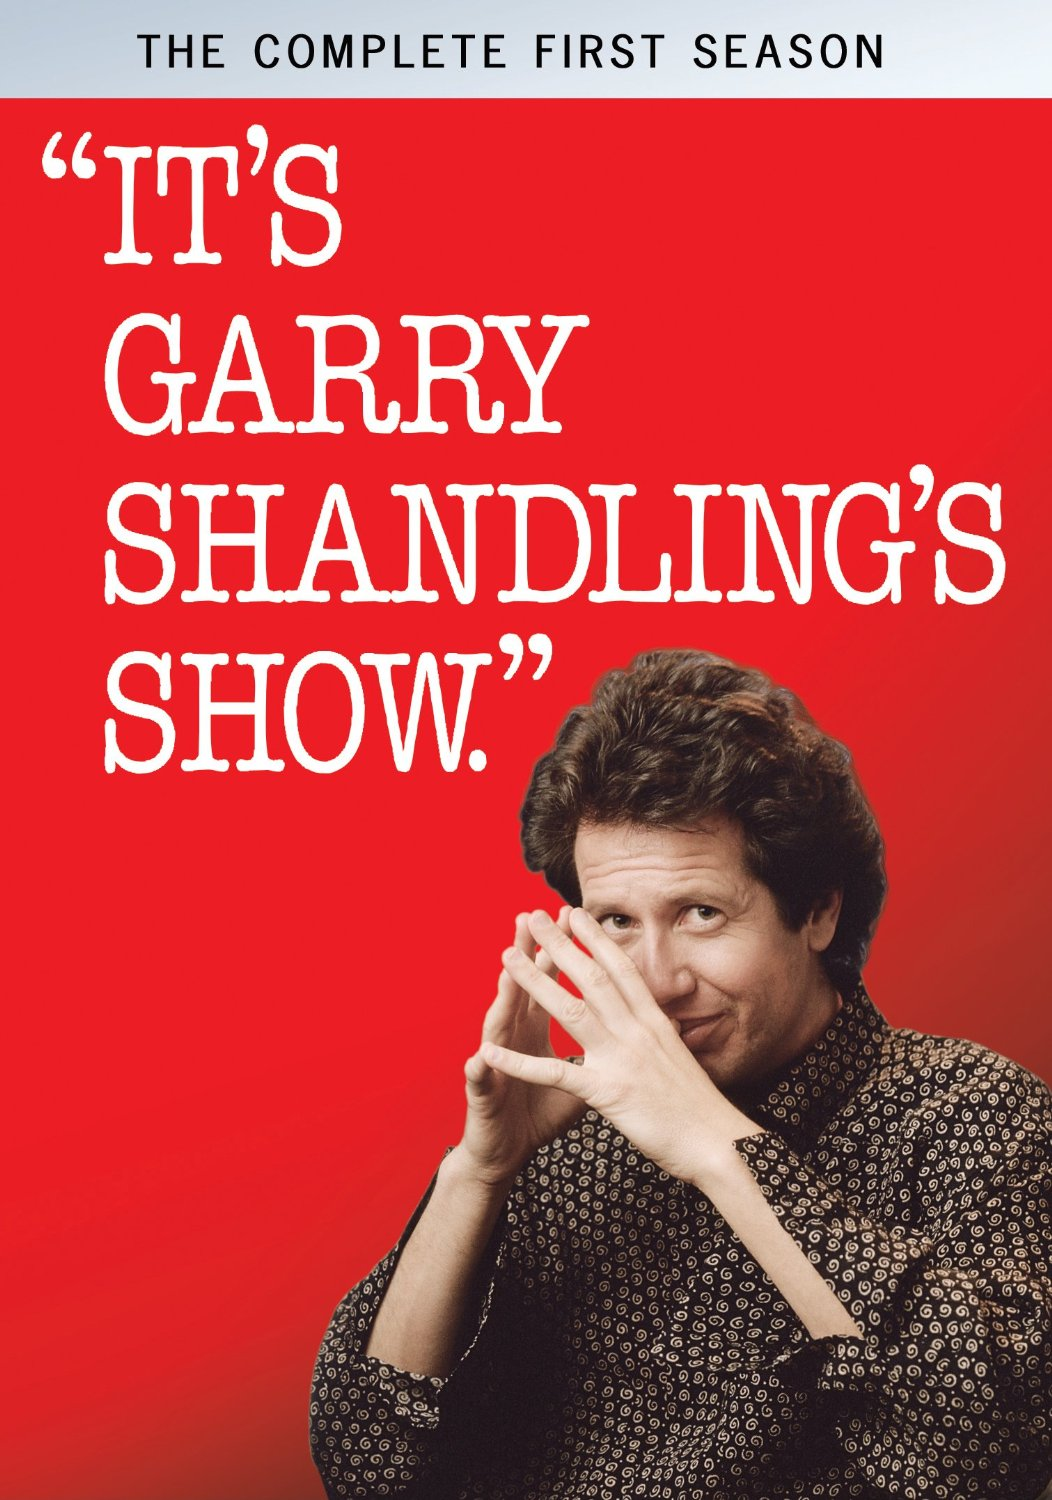 This Is The Tribute To Garry Shandling